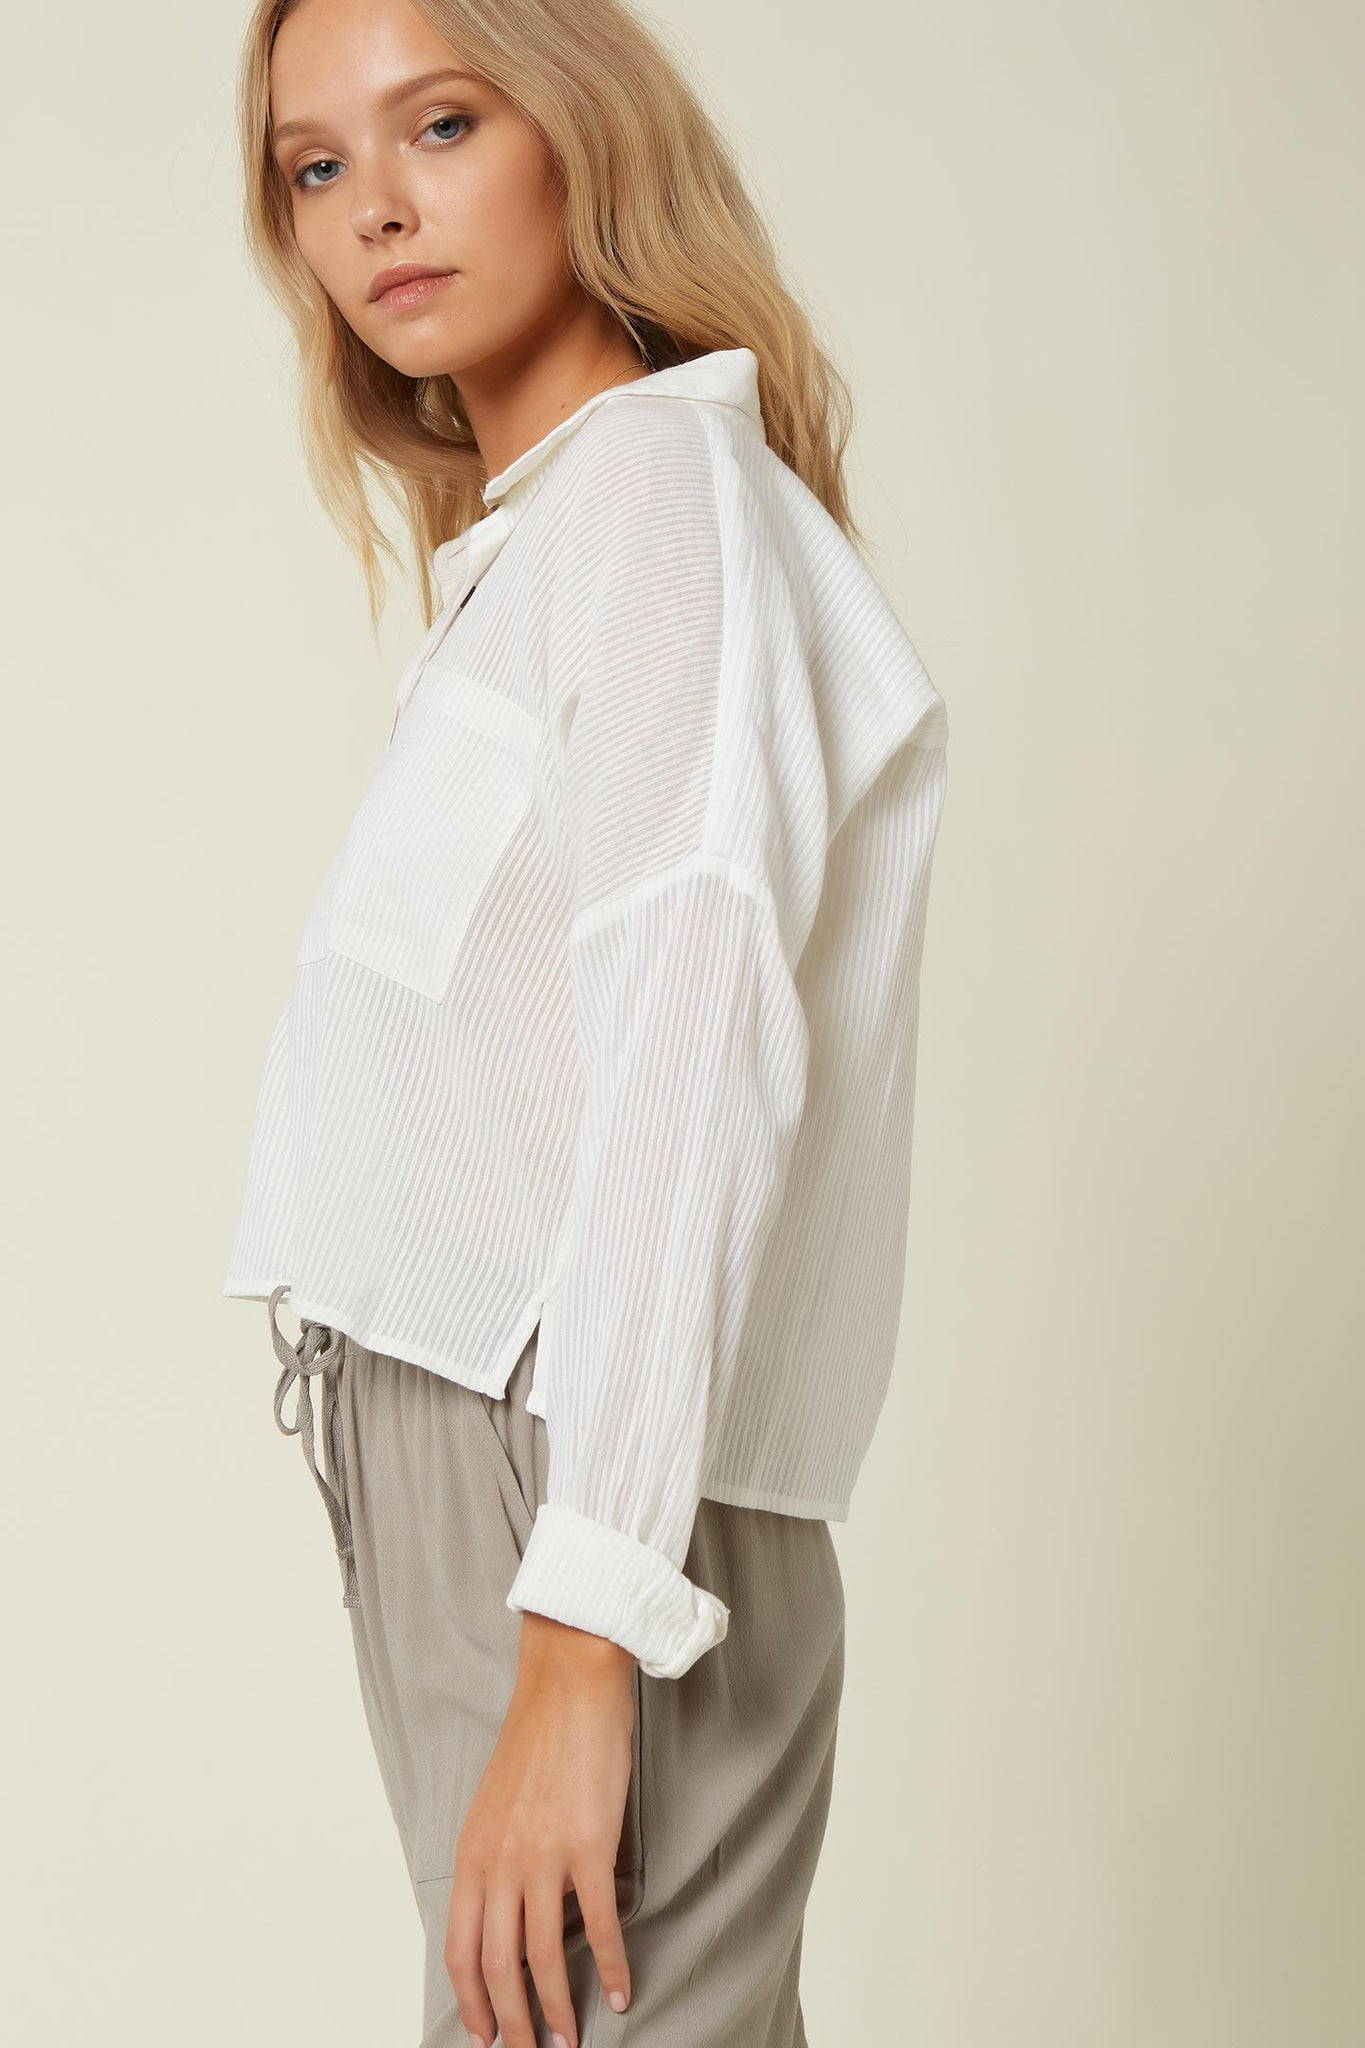 Barlea Long Sleeve Top - White | O'Neill